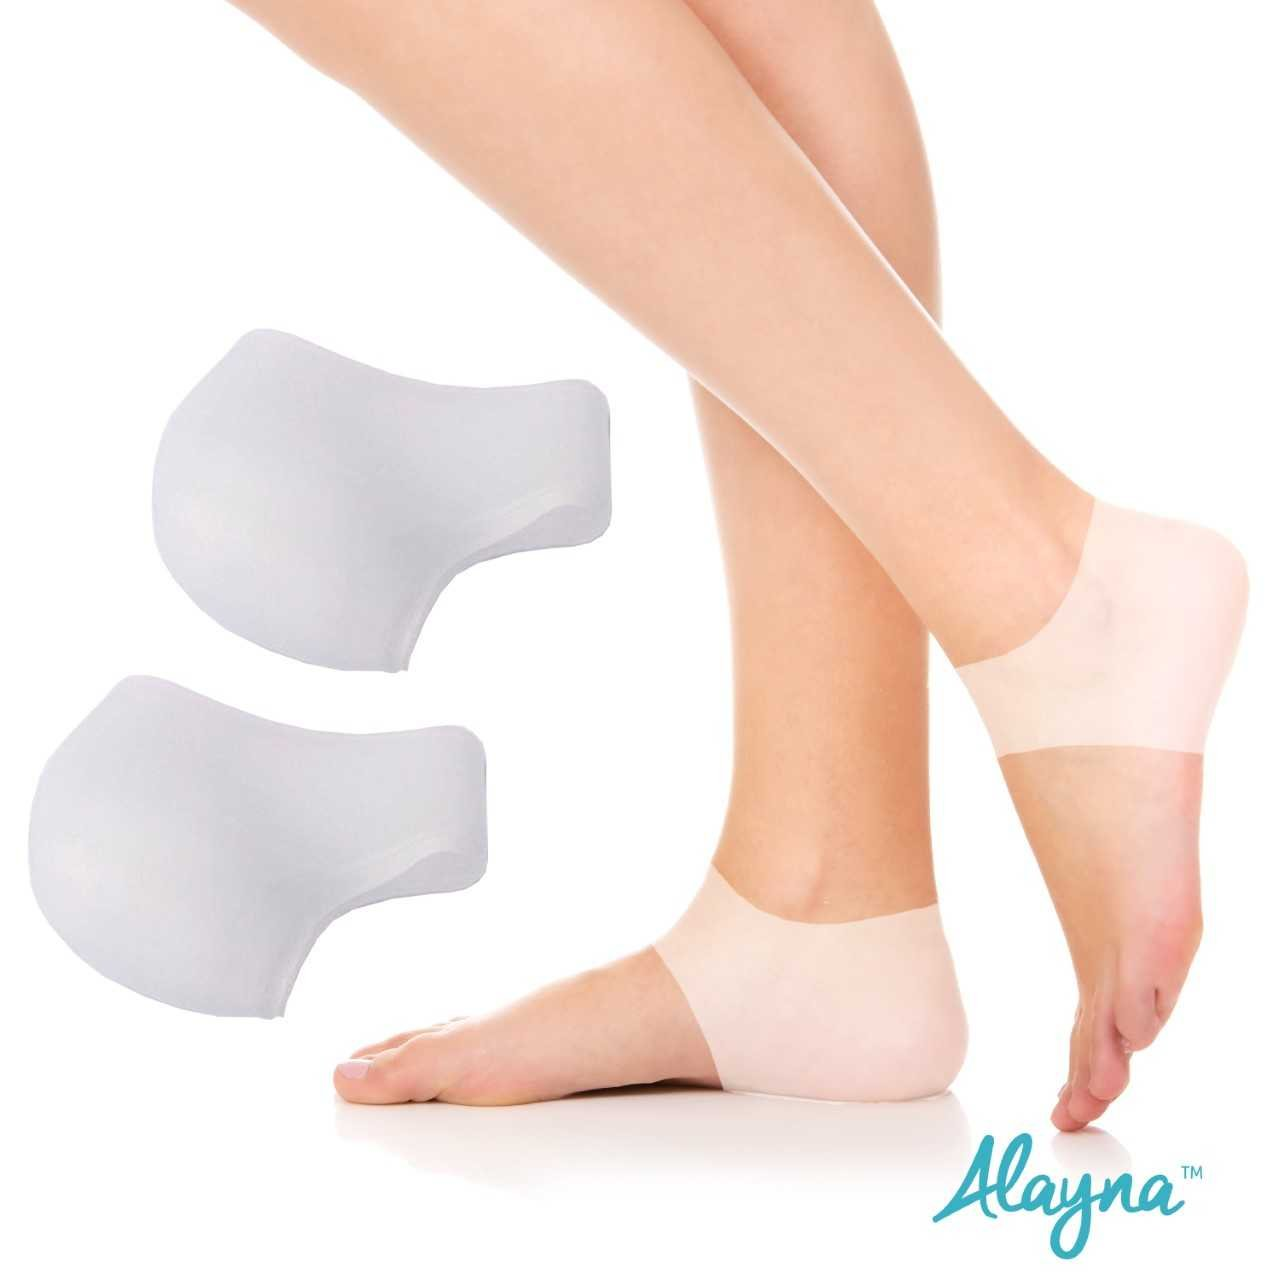 224084a65819 Amazon.com: Silicone Gel Heel Protector - Plantar Fasciitis Soft Socks for  Hard, Cracked, Dry Skin- One Pair- Moisturizing Protector by Alayna: Health  ...